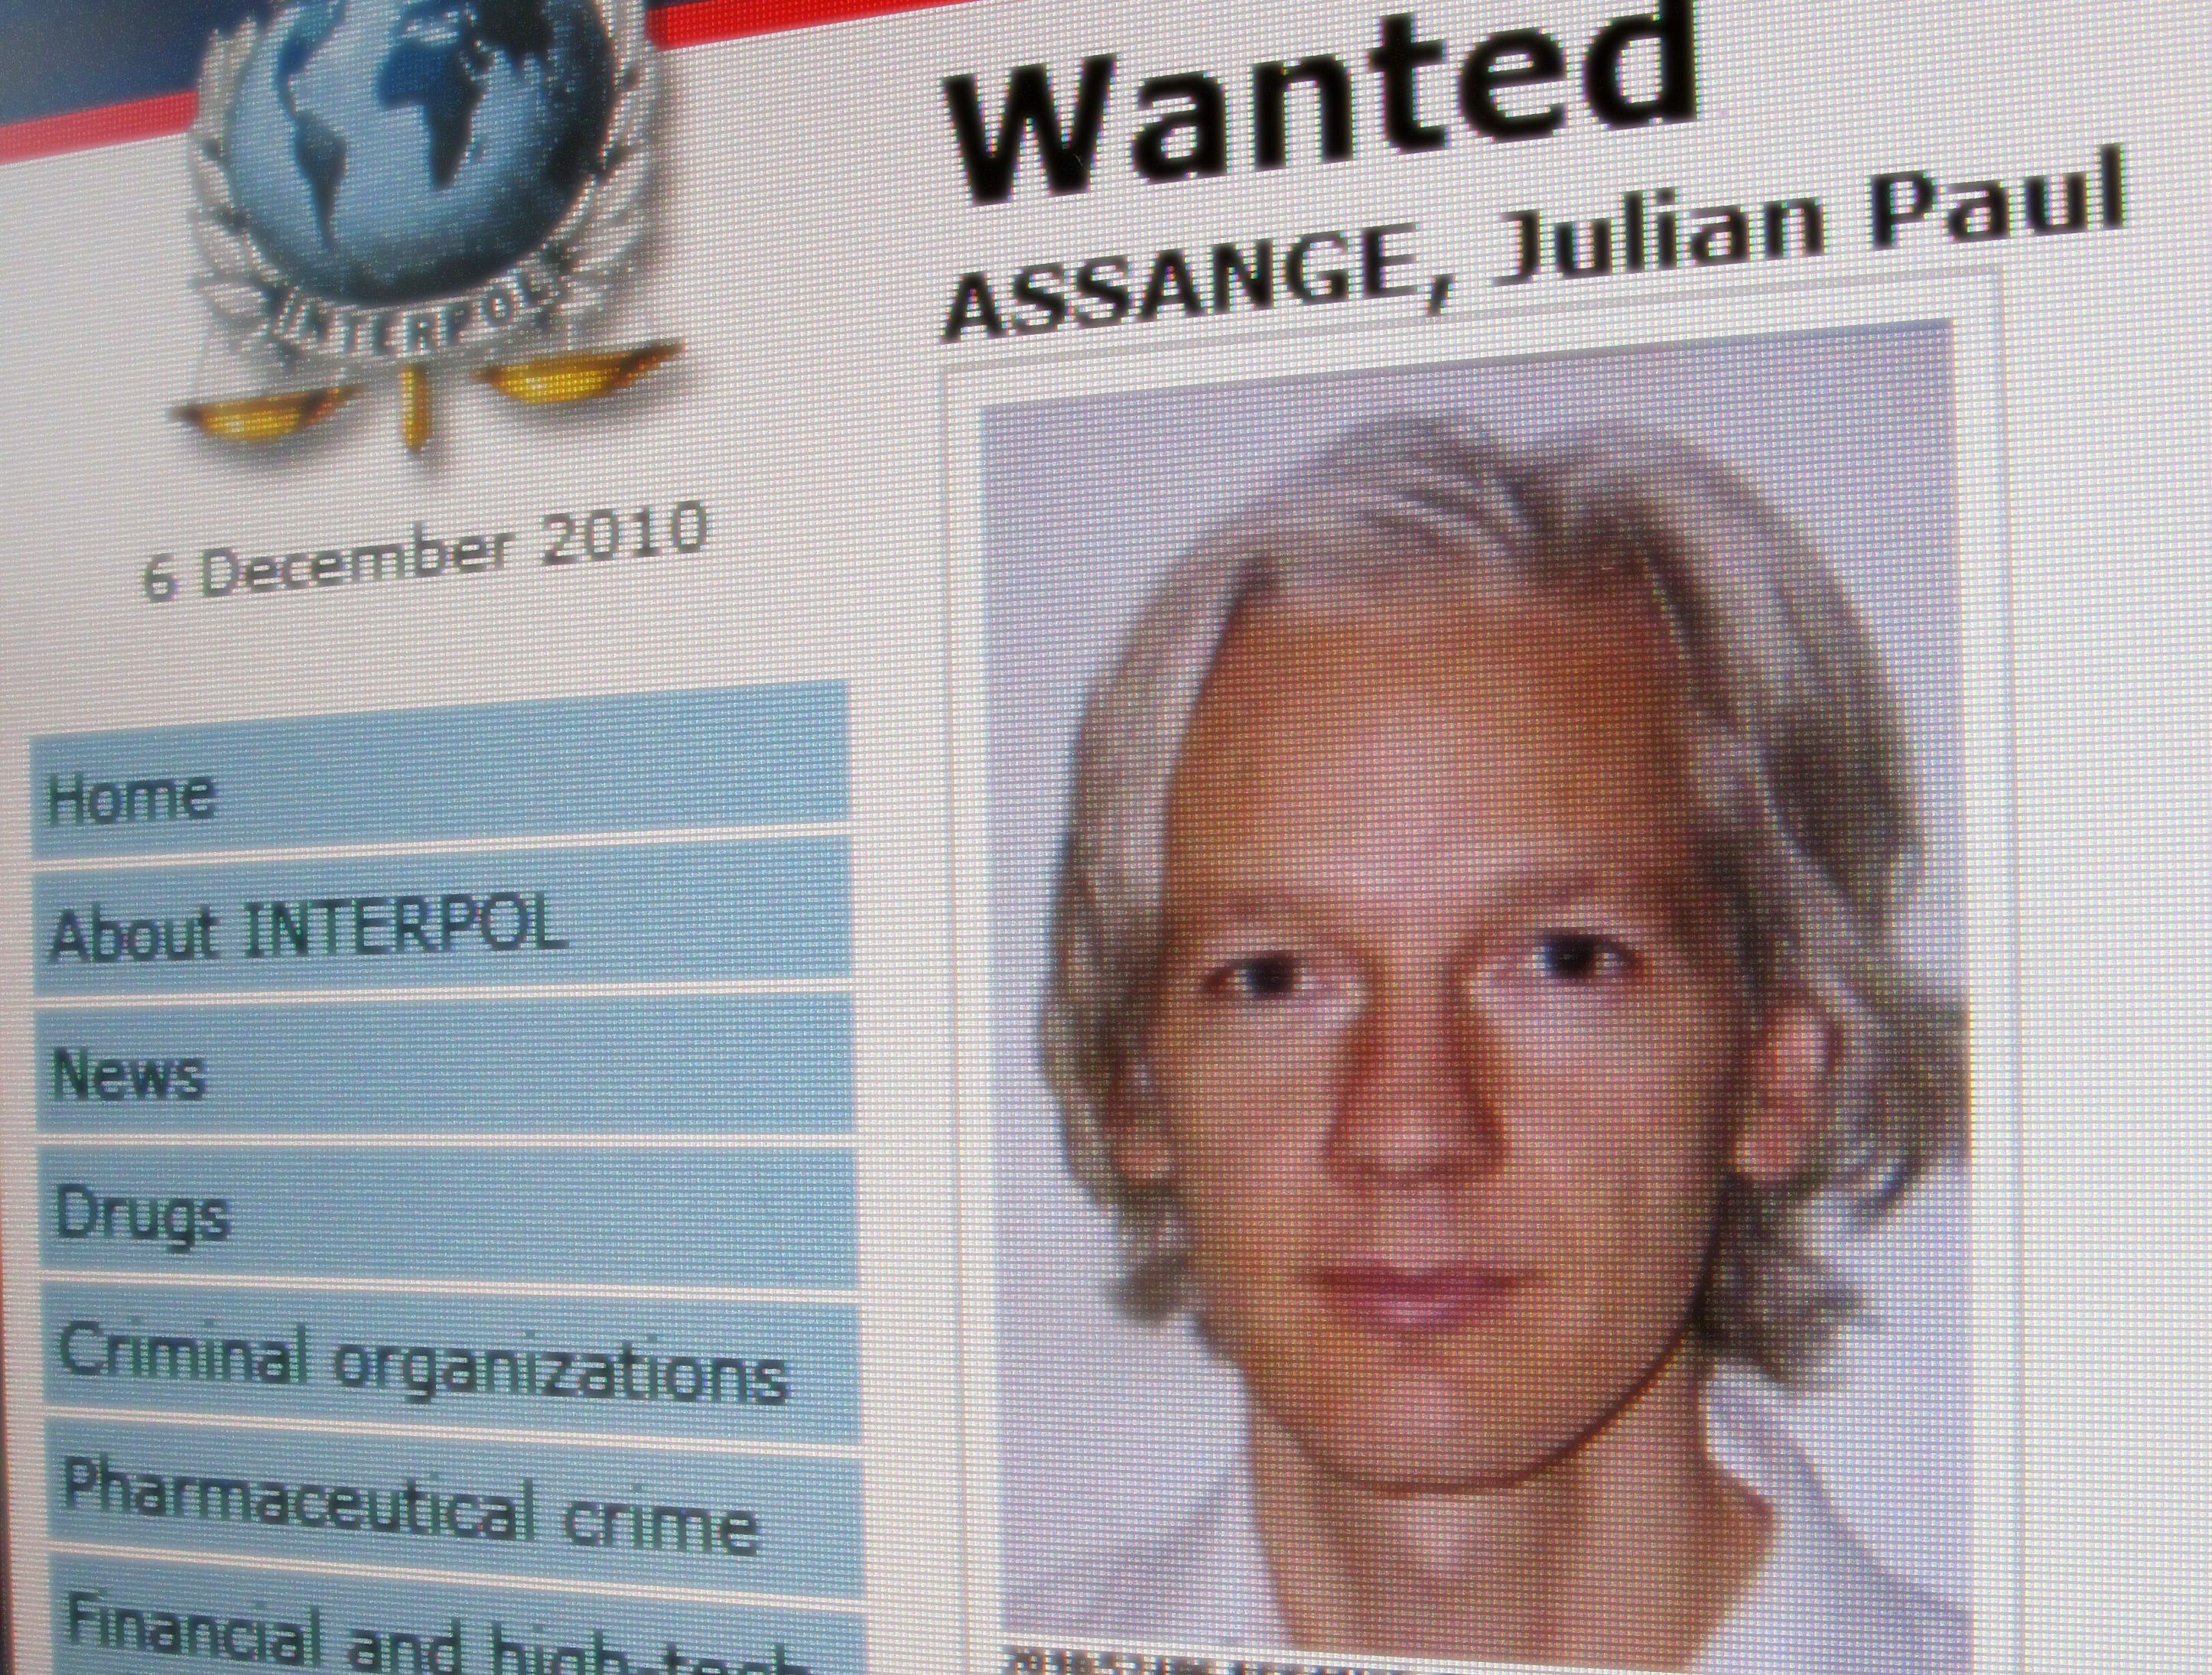 A detail from the Interpol website showing the appeal for the arrest of the editor-in-chief of the Wikileaks whistleblowing website, Julian Assange on December 6, 2010.